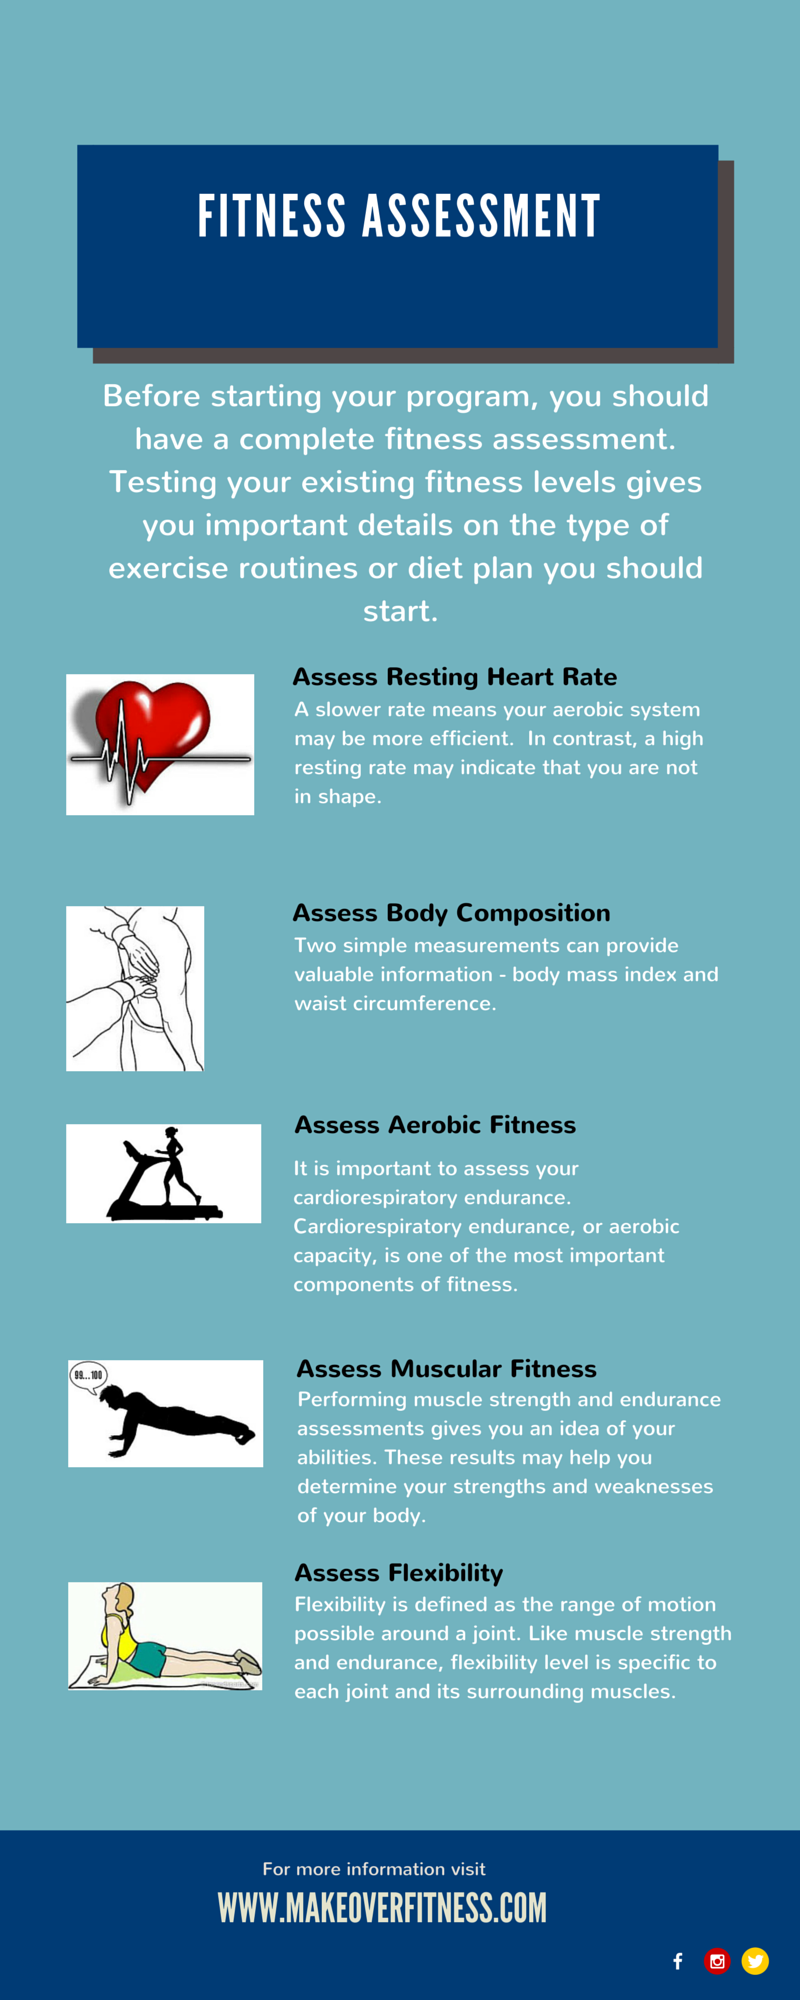 Fitness assessment infographic that you can download and print.